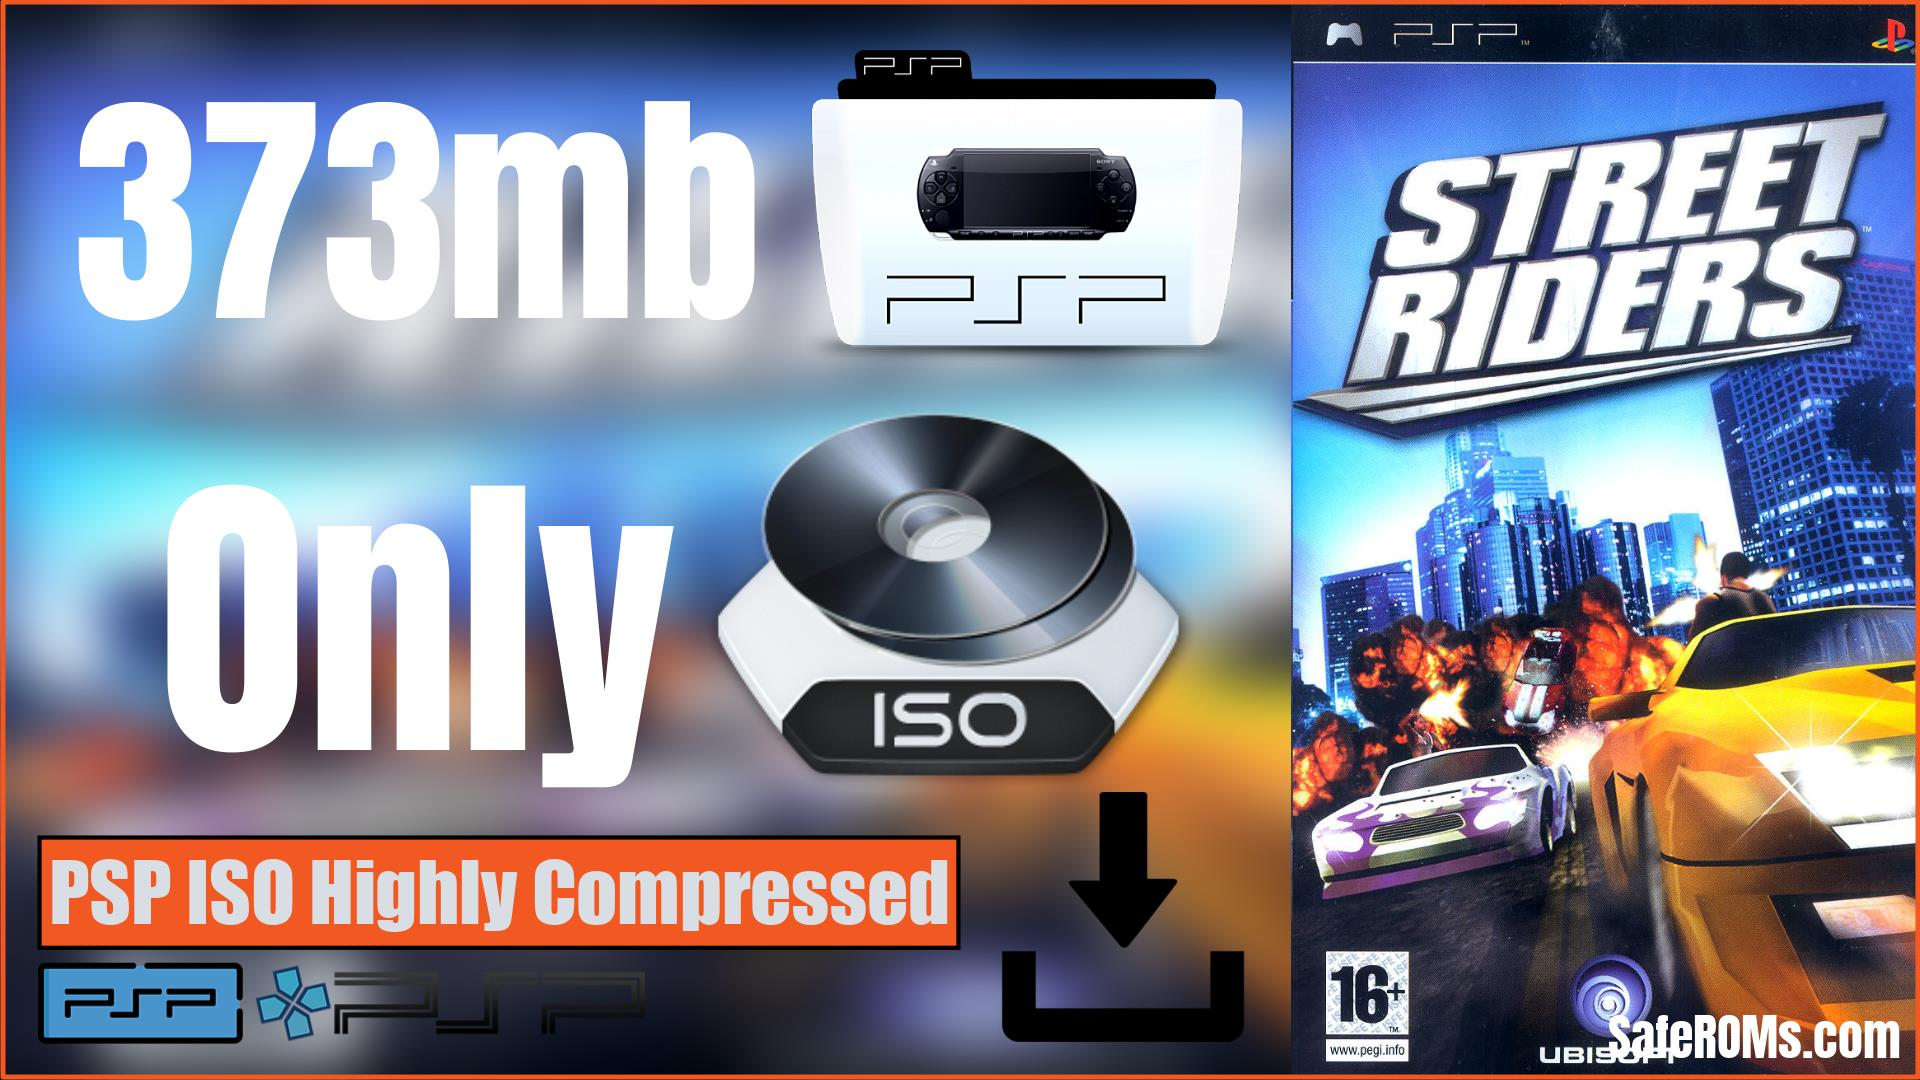 Street Riders PSP ISO Highly Compressed Download